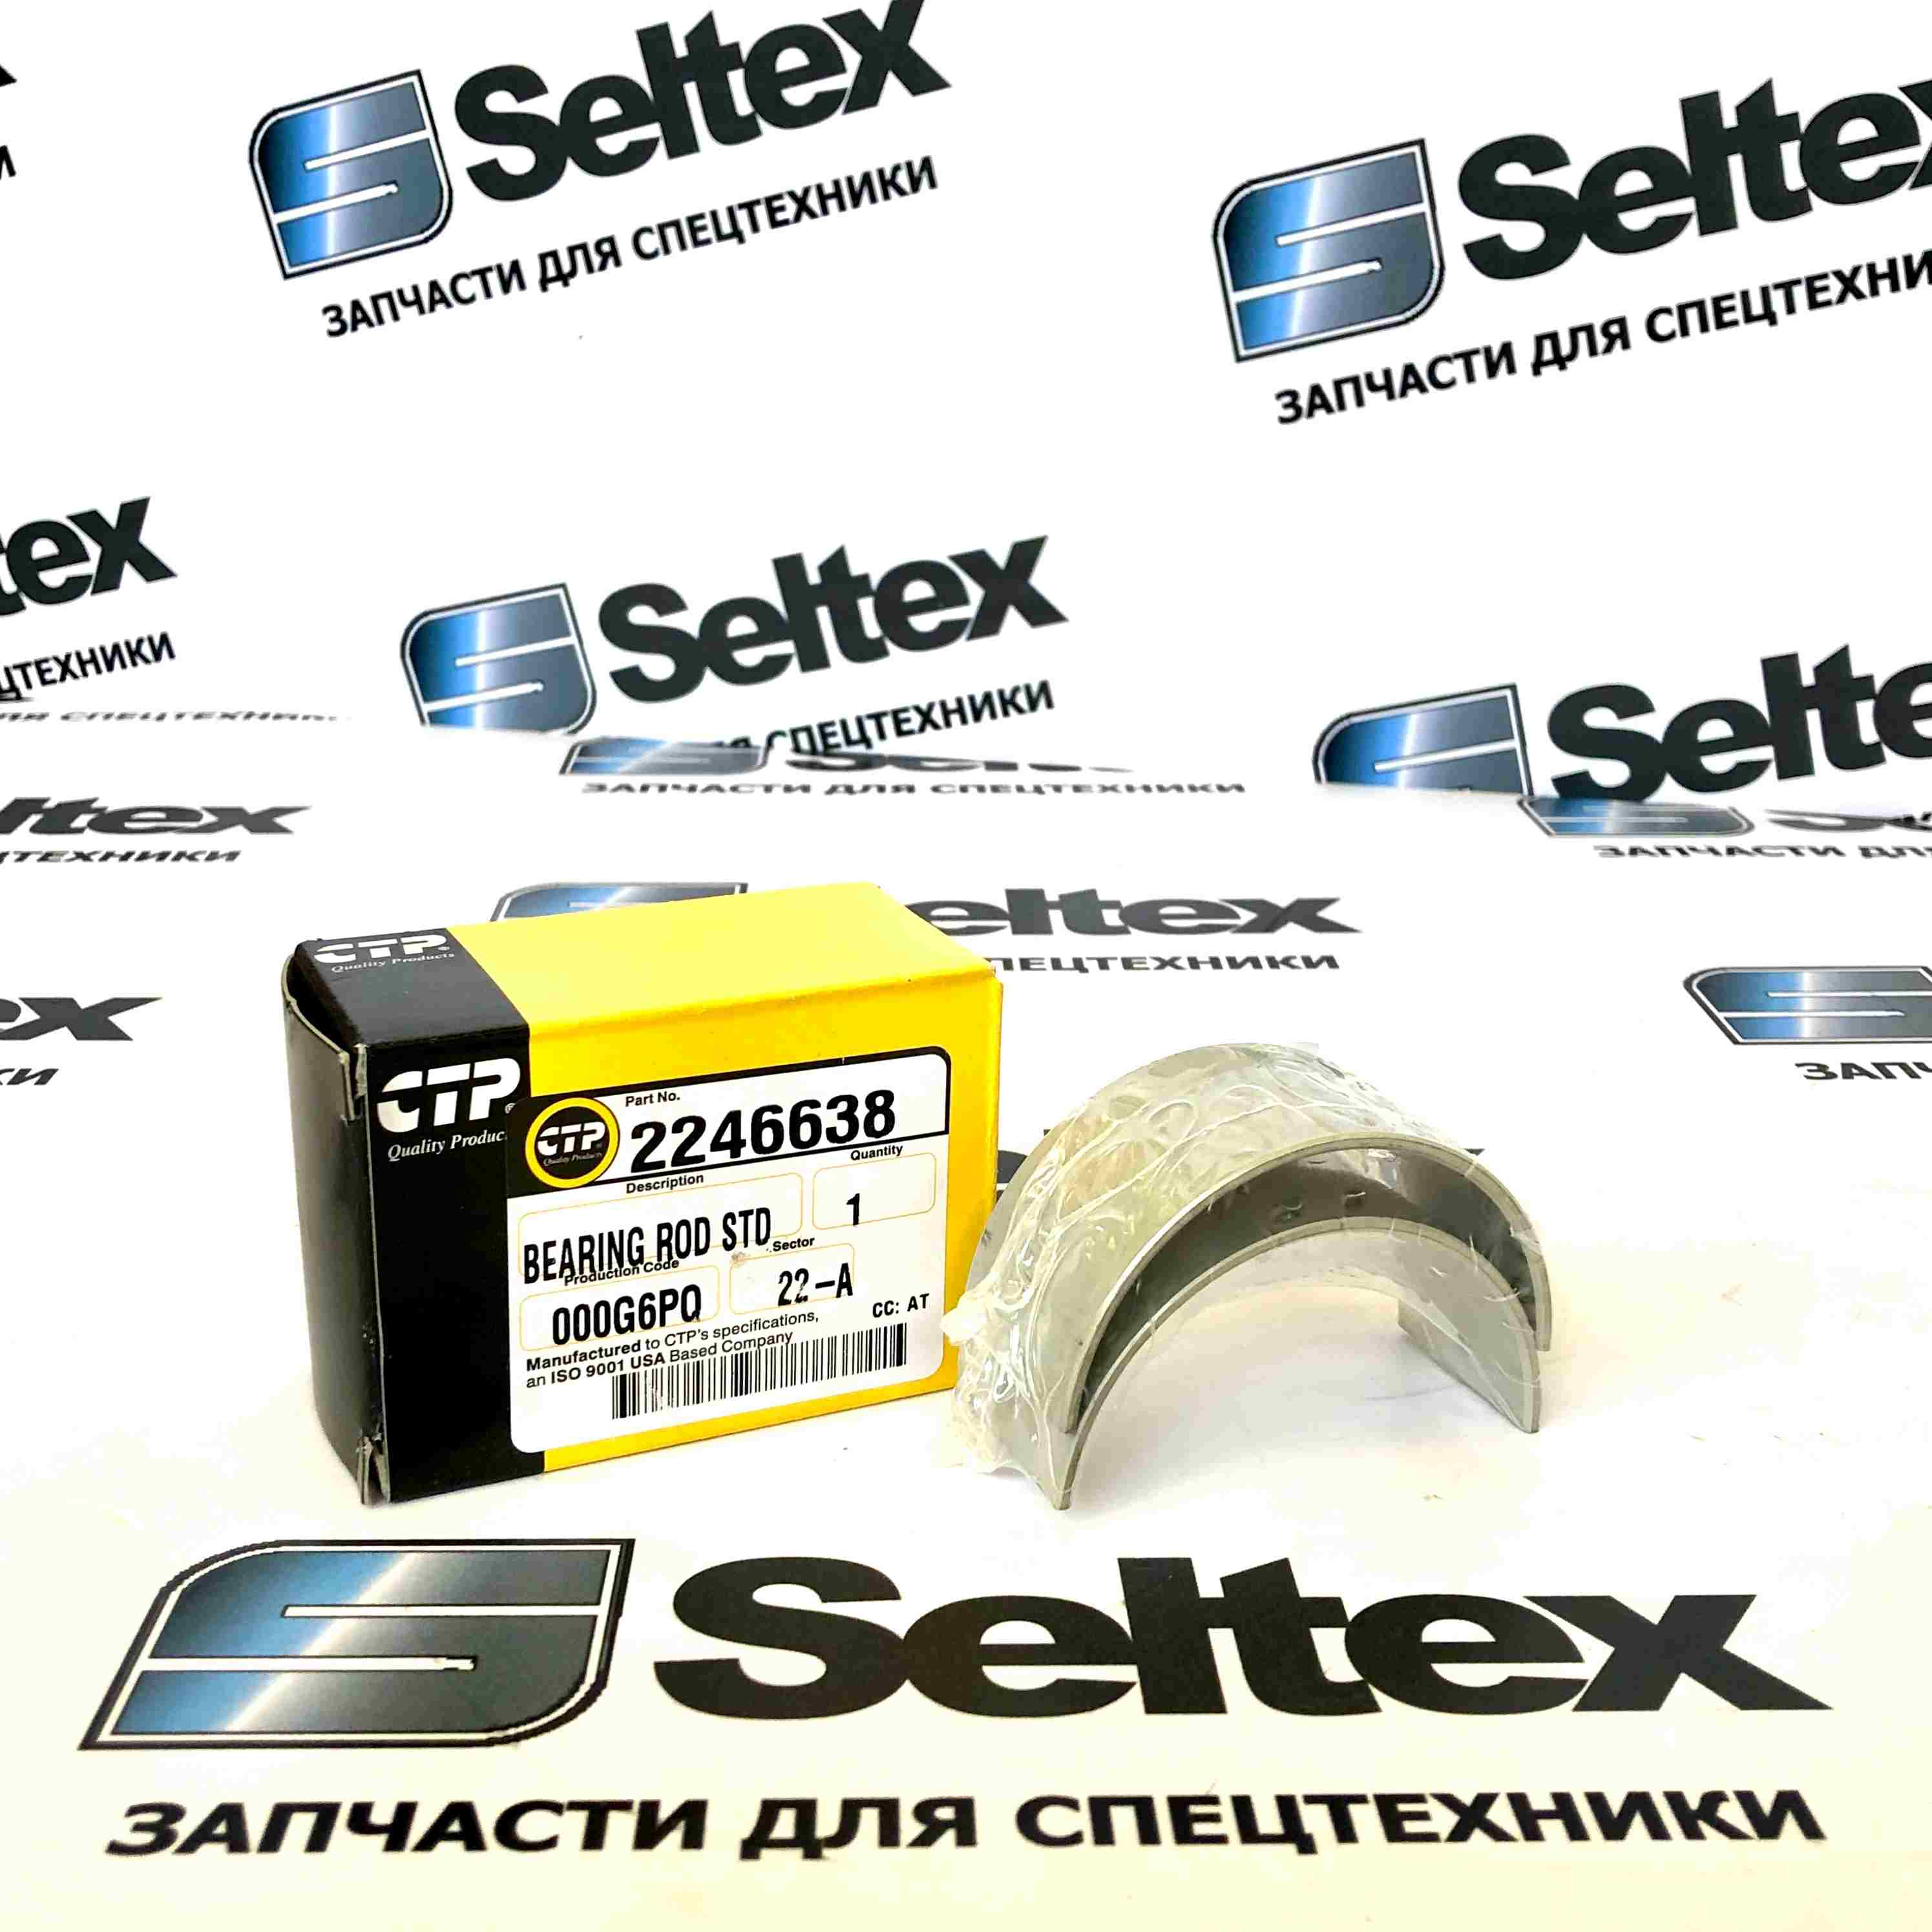 Caterpillar Seltex